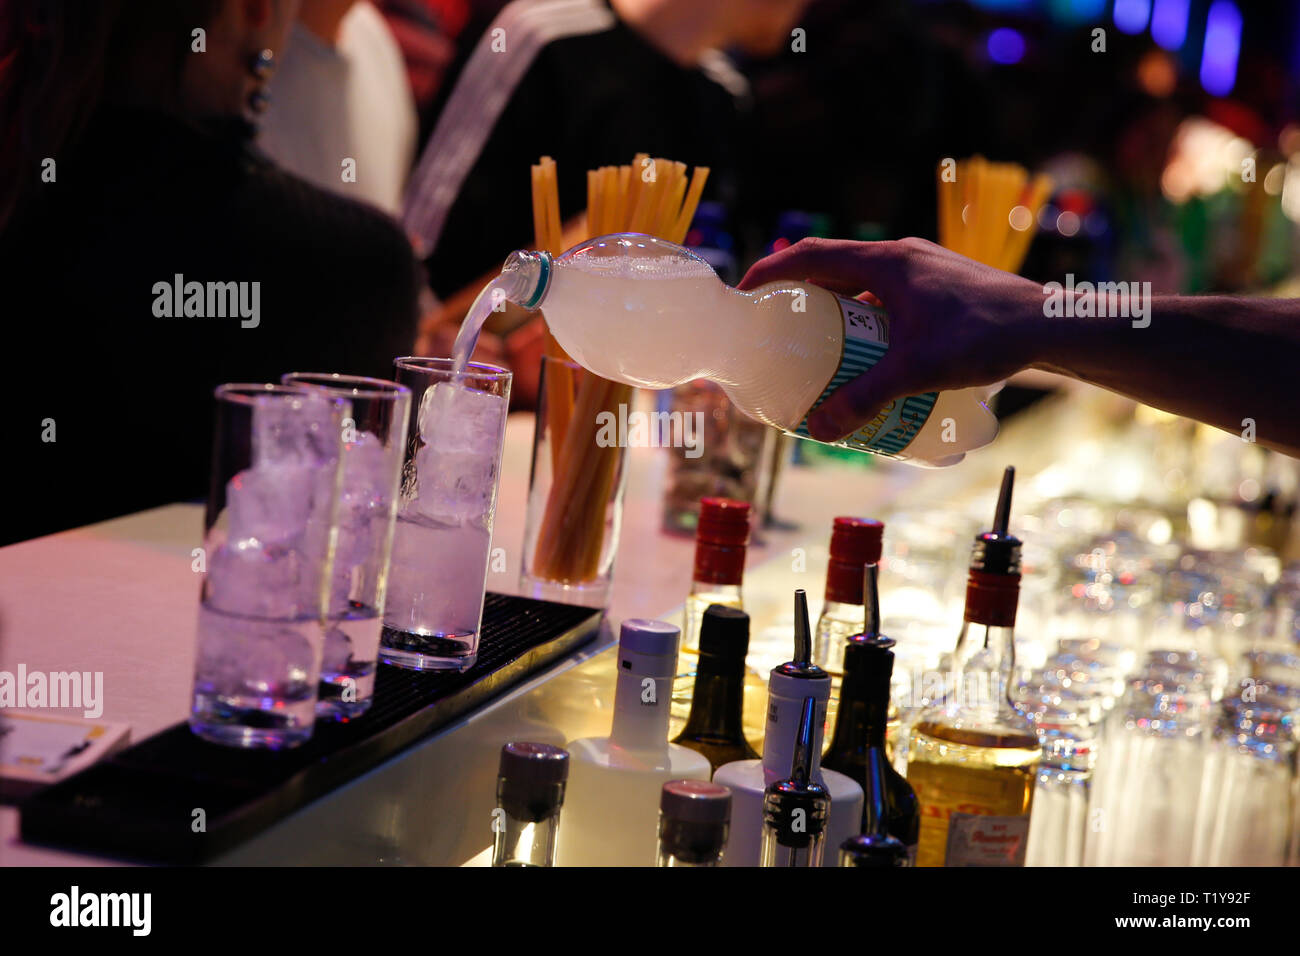 Berlin, Germany. 28th Mar, 2019. Drinks are mixed at the bar. The launch of Lidl's 'Esmara x Influencer' collection at the Arena Berlin was a celebration. Credit: Gerald Matzka/dpa-Zentralbild/ZB/dpa/Alamy Live News - Stock Image